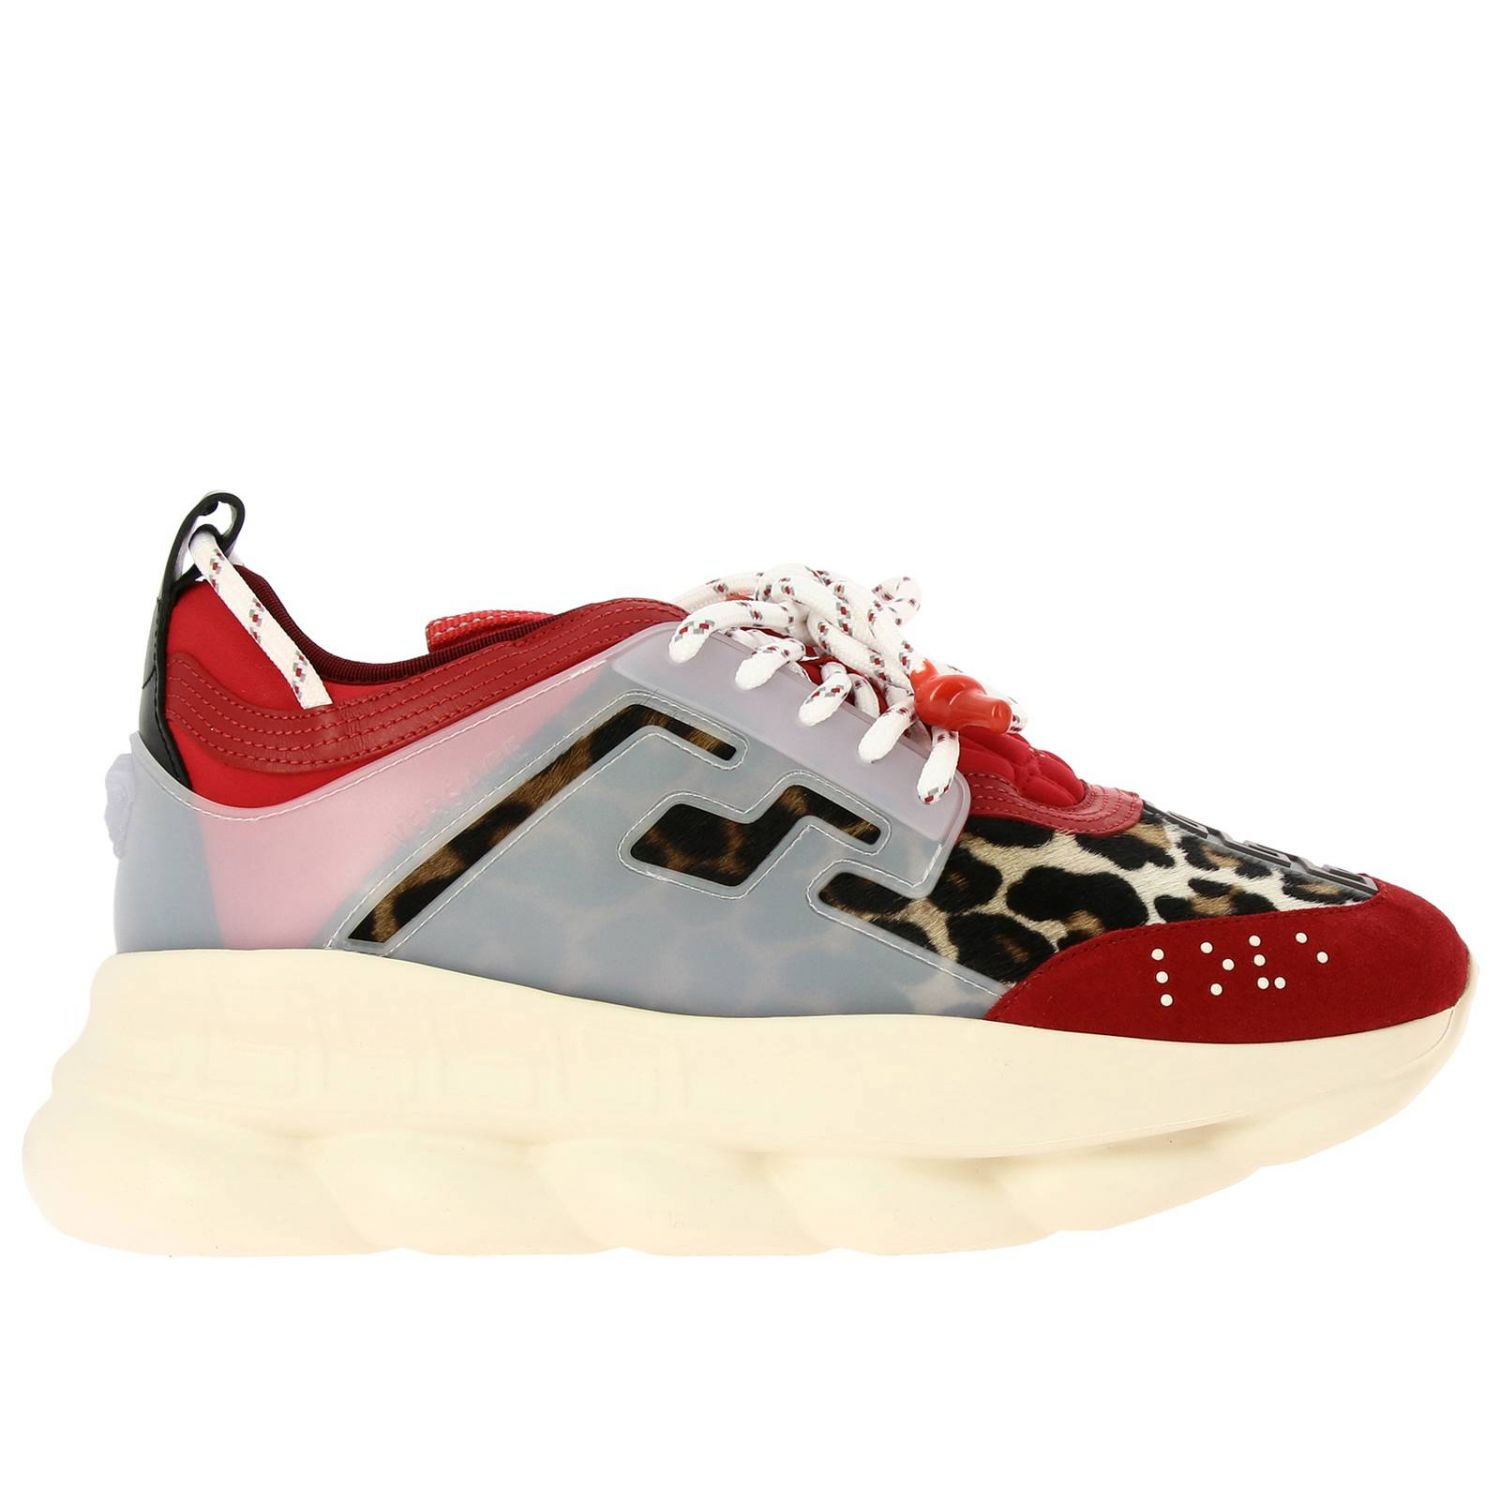 Trainers Versace: Versace Chain Reaction sneakers in neoprene and spotted fabric red 1